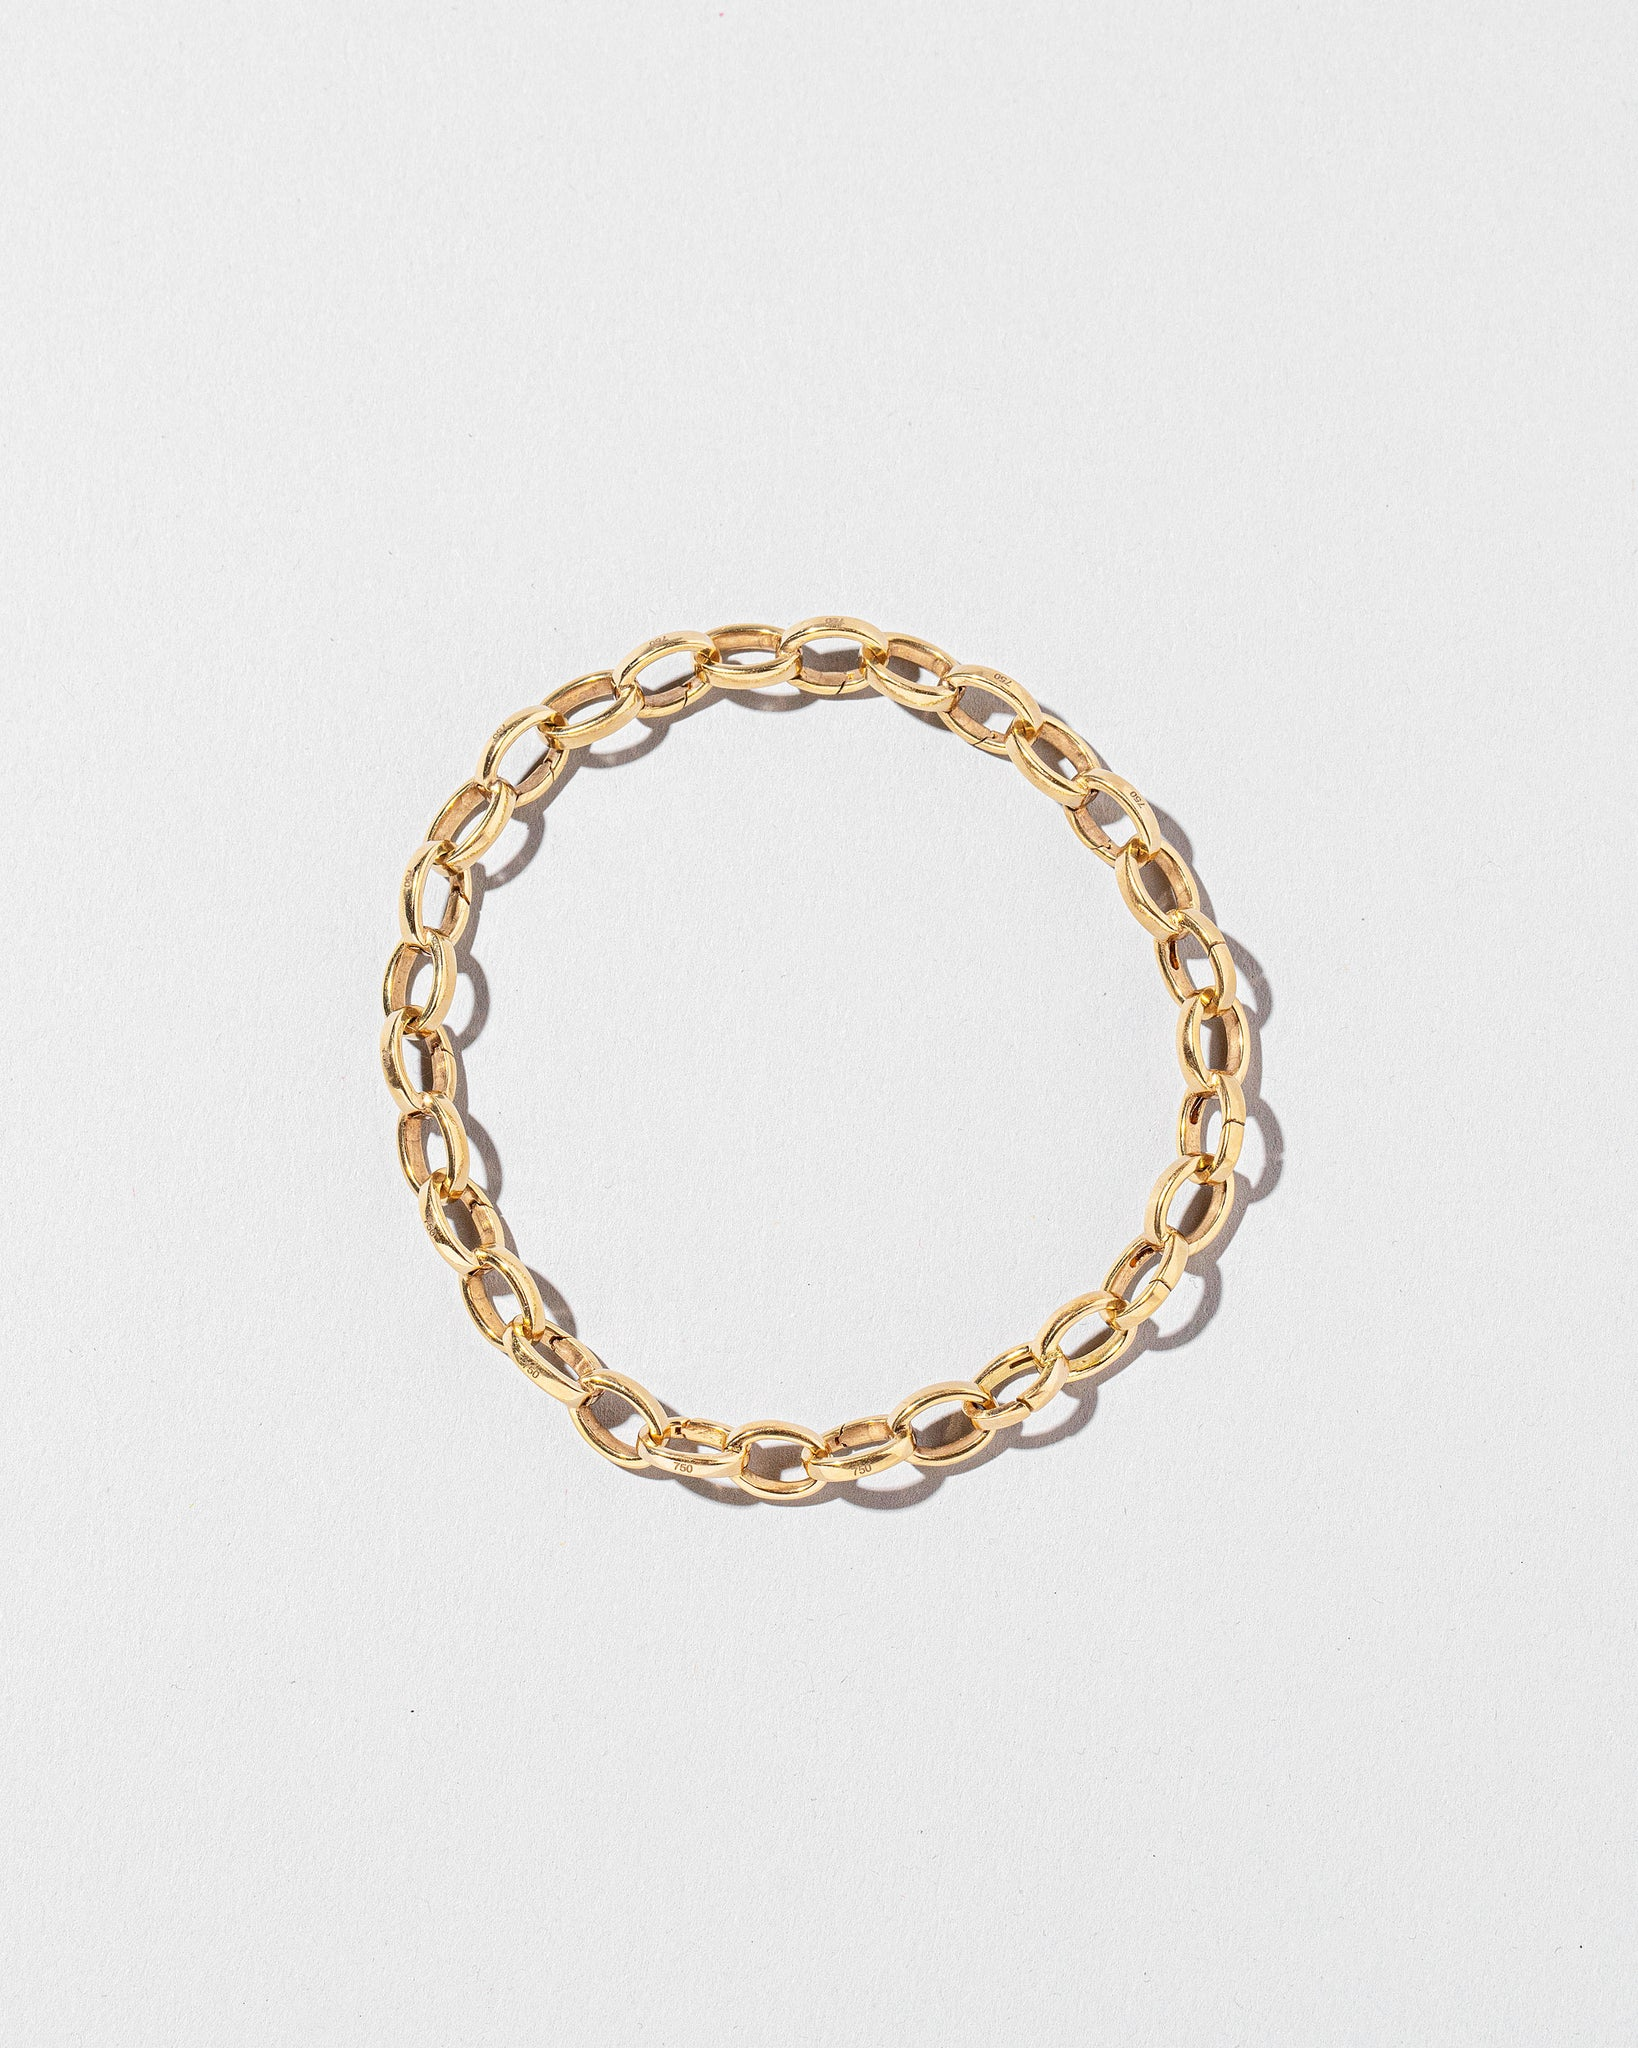 Endless Clasp Bracelet on light color background